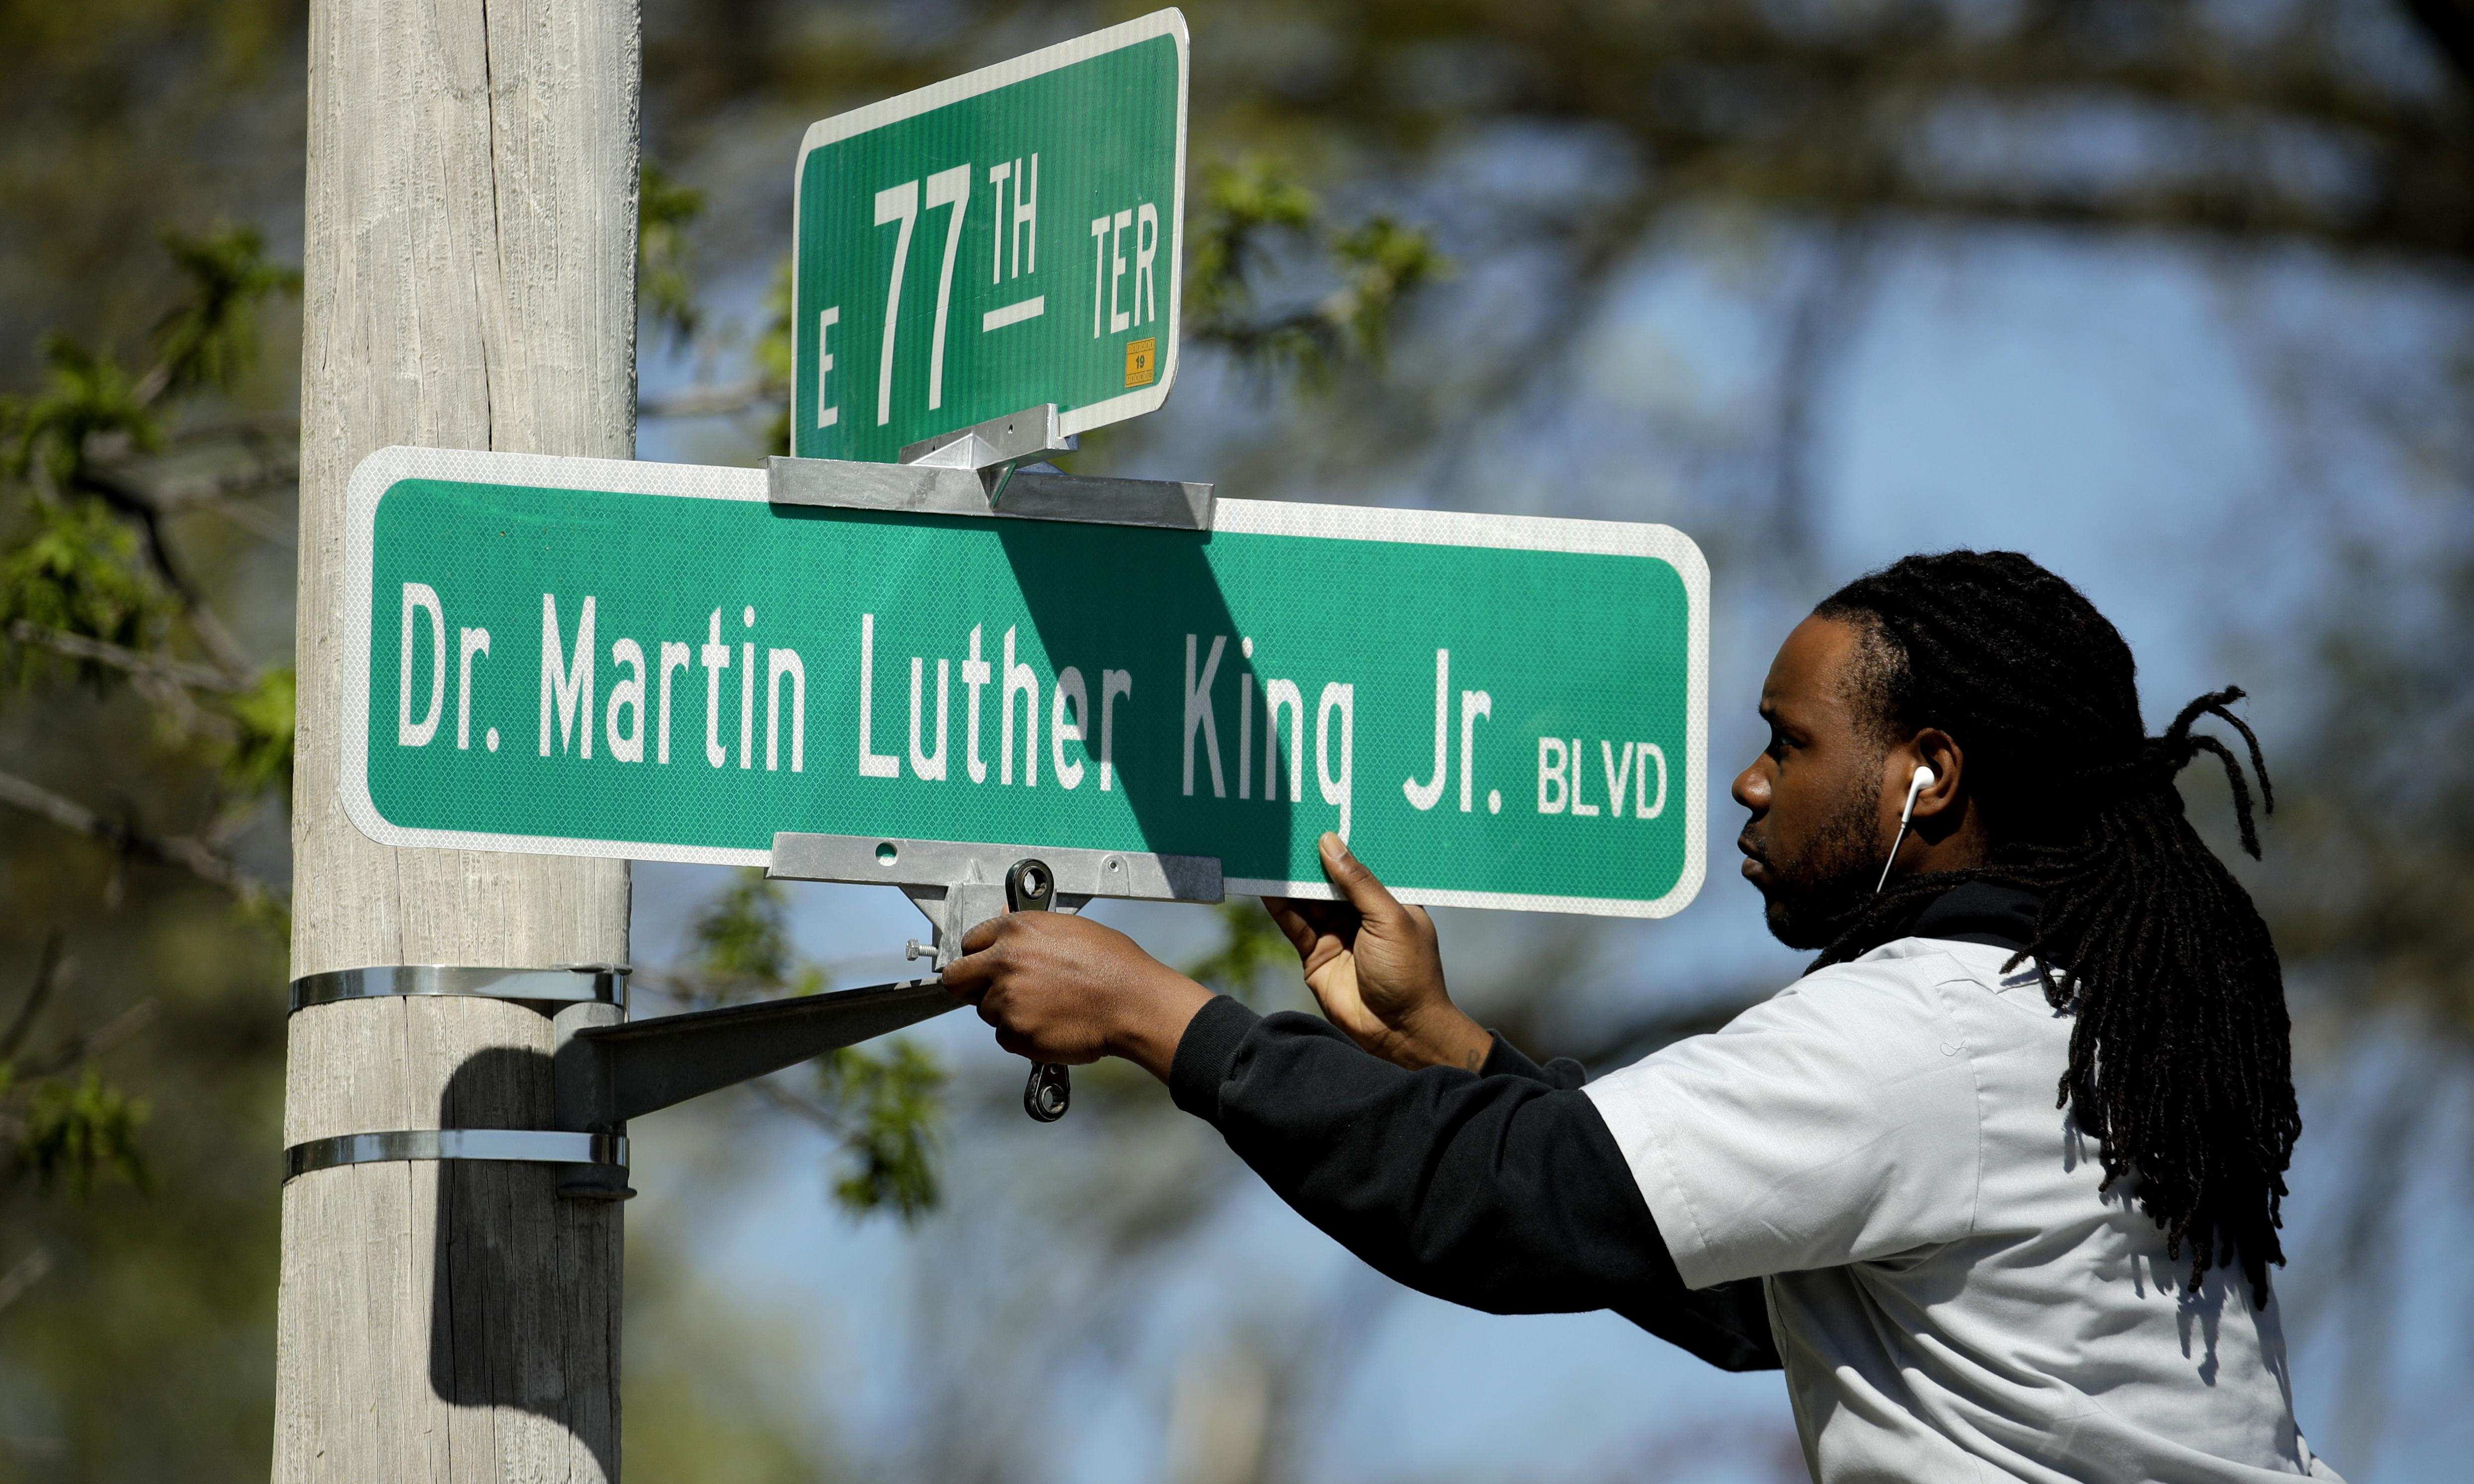 Voters overwhelmingly tell Kansas City to drop Martin Luther King street name